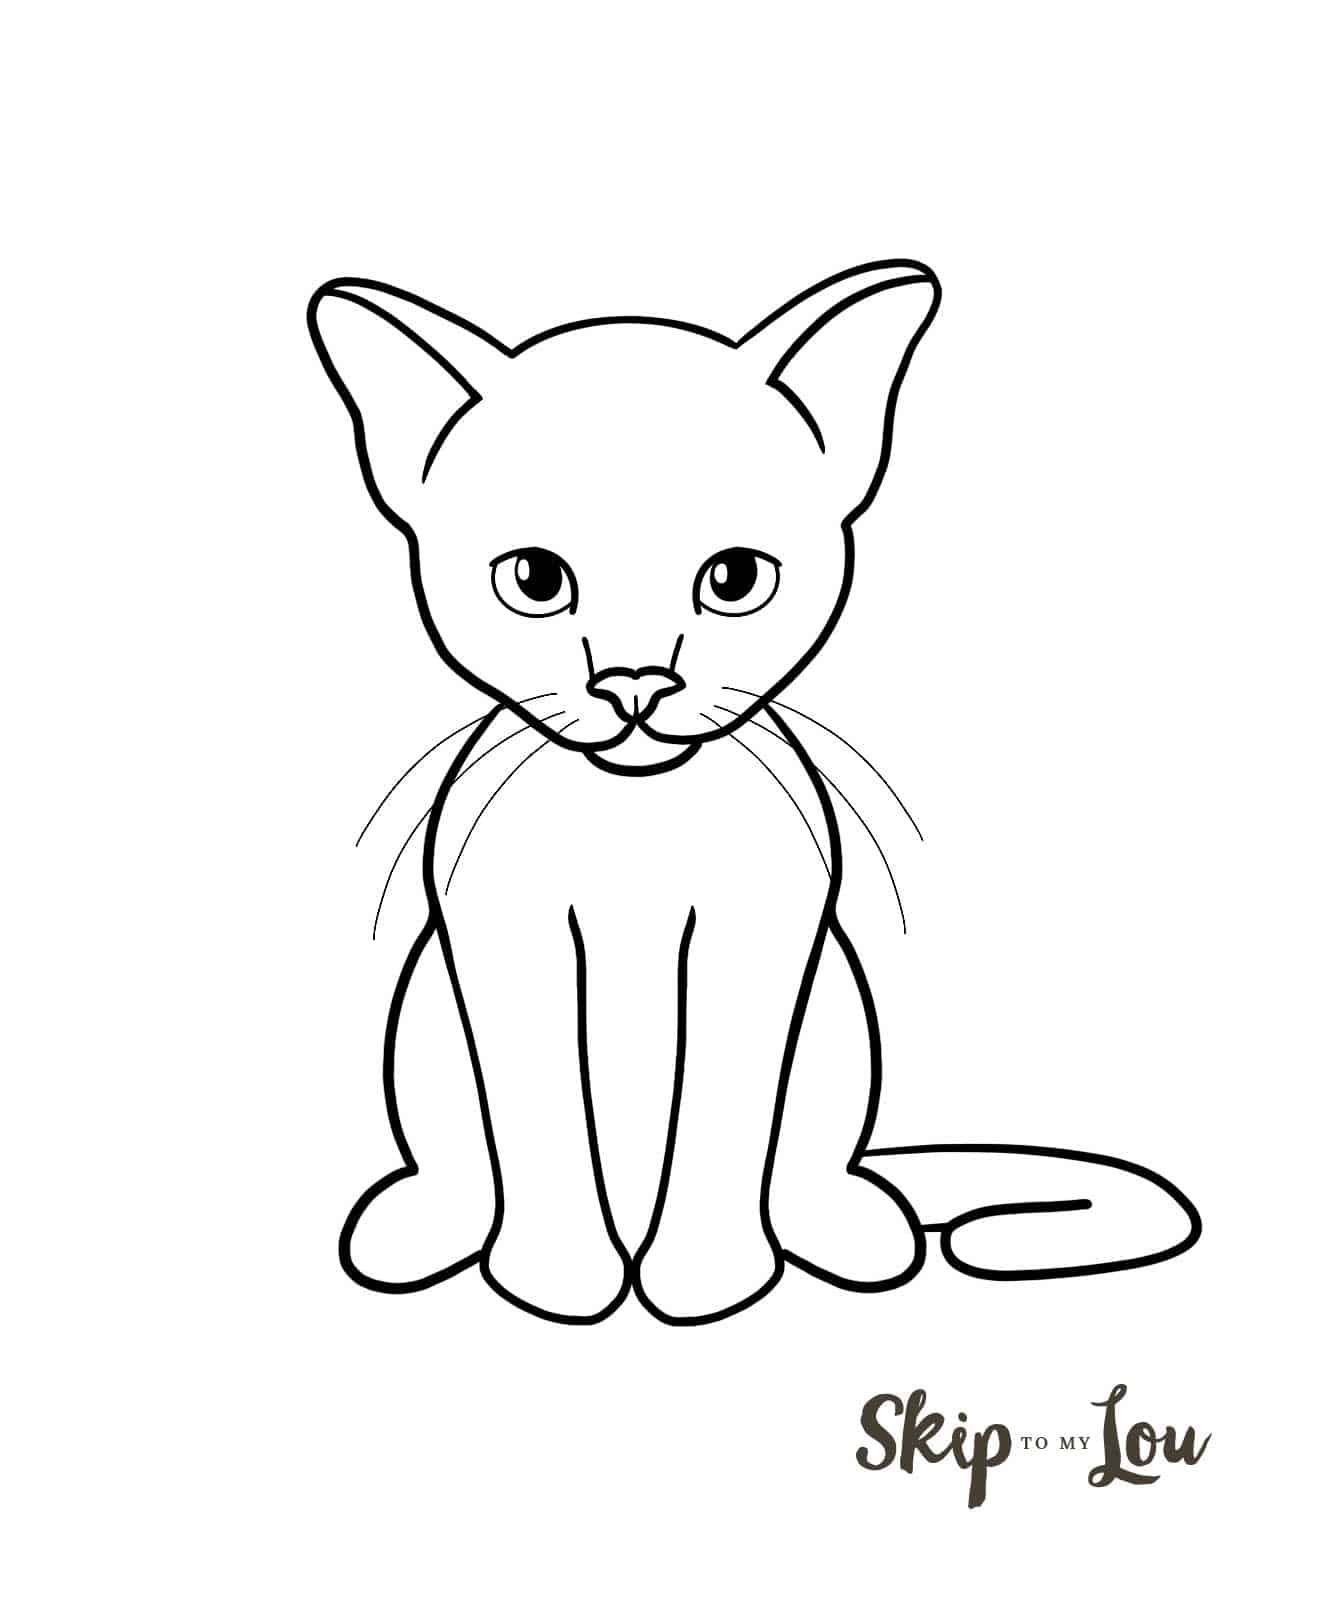 How To Draw A Cat Simple Cat Drawing Cat Drawing Drawings